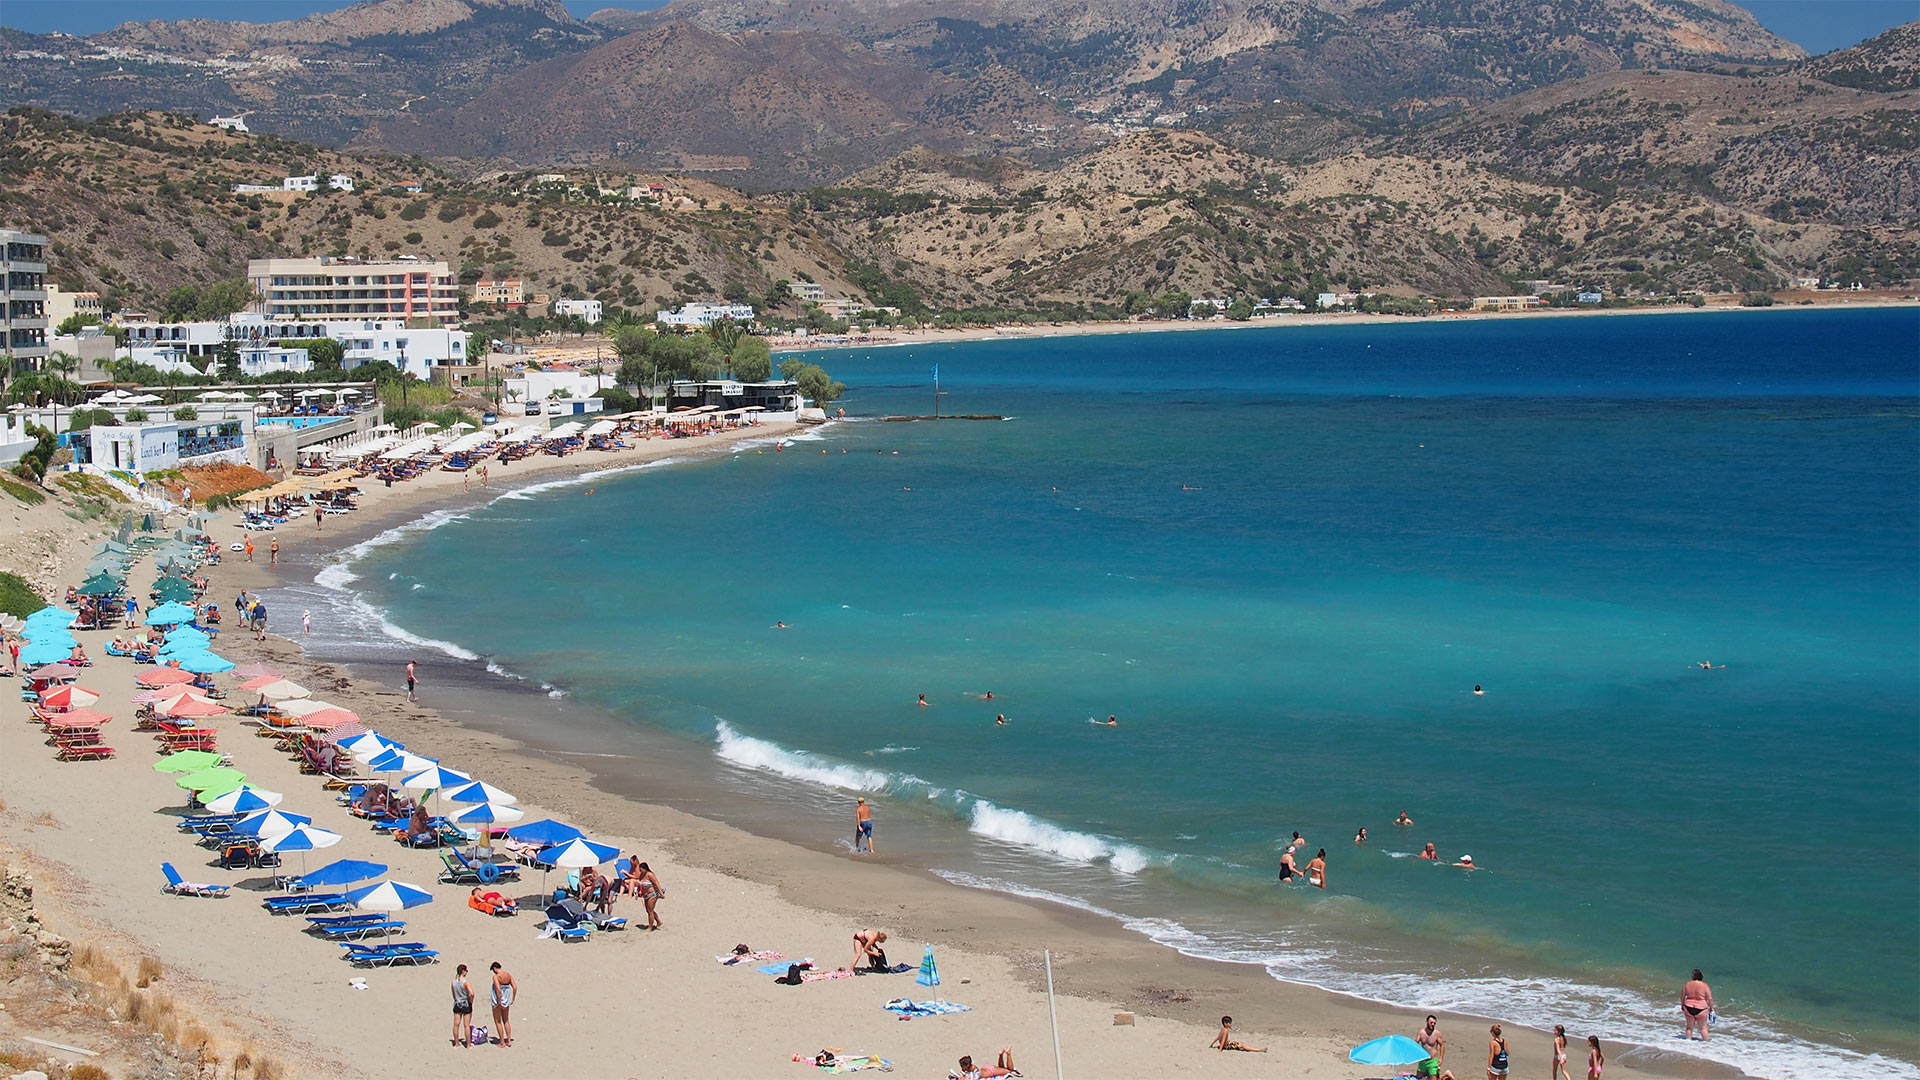 images/slider/xenonas-beach-karpathos-slider.jpg